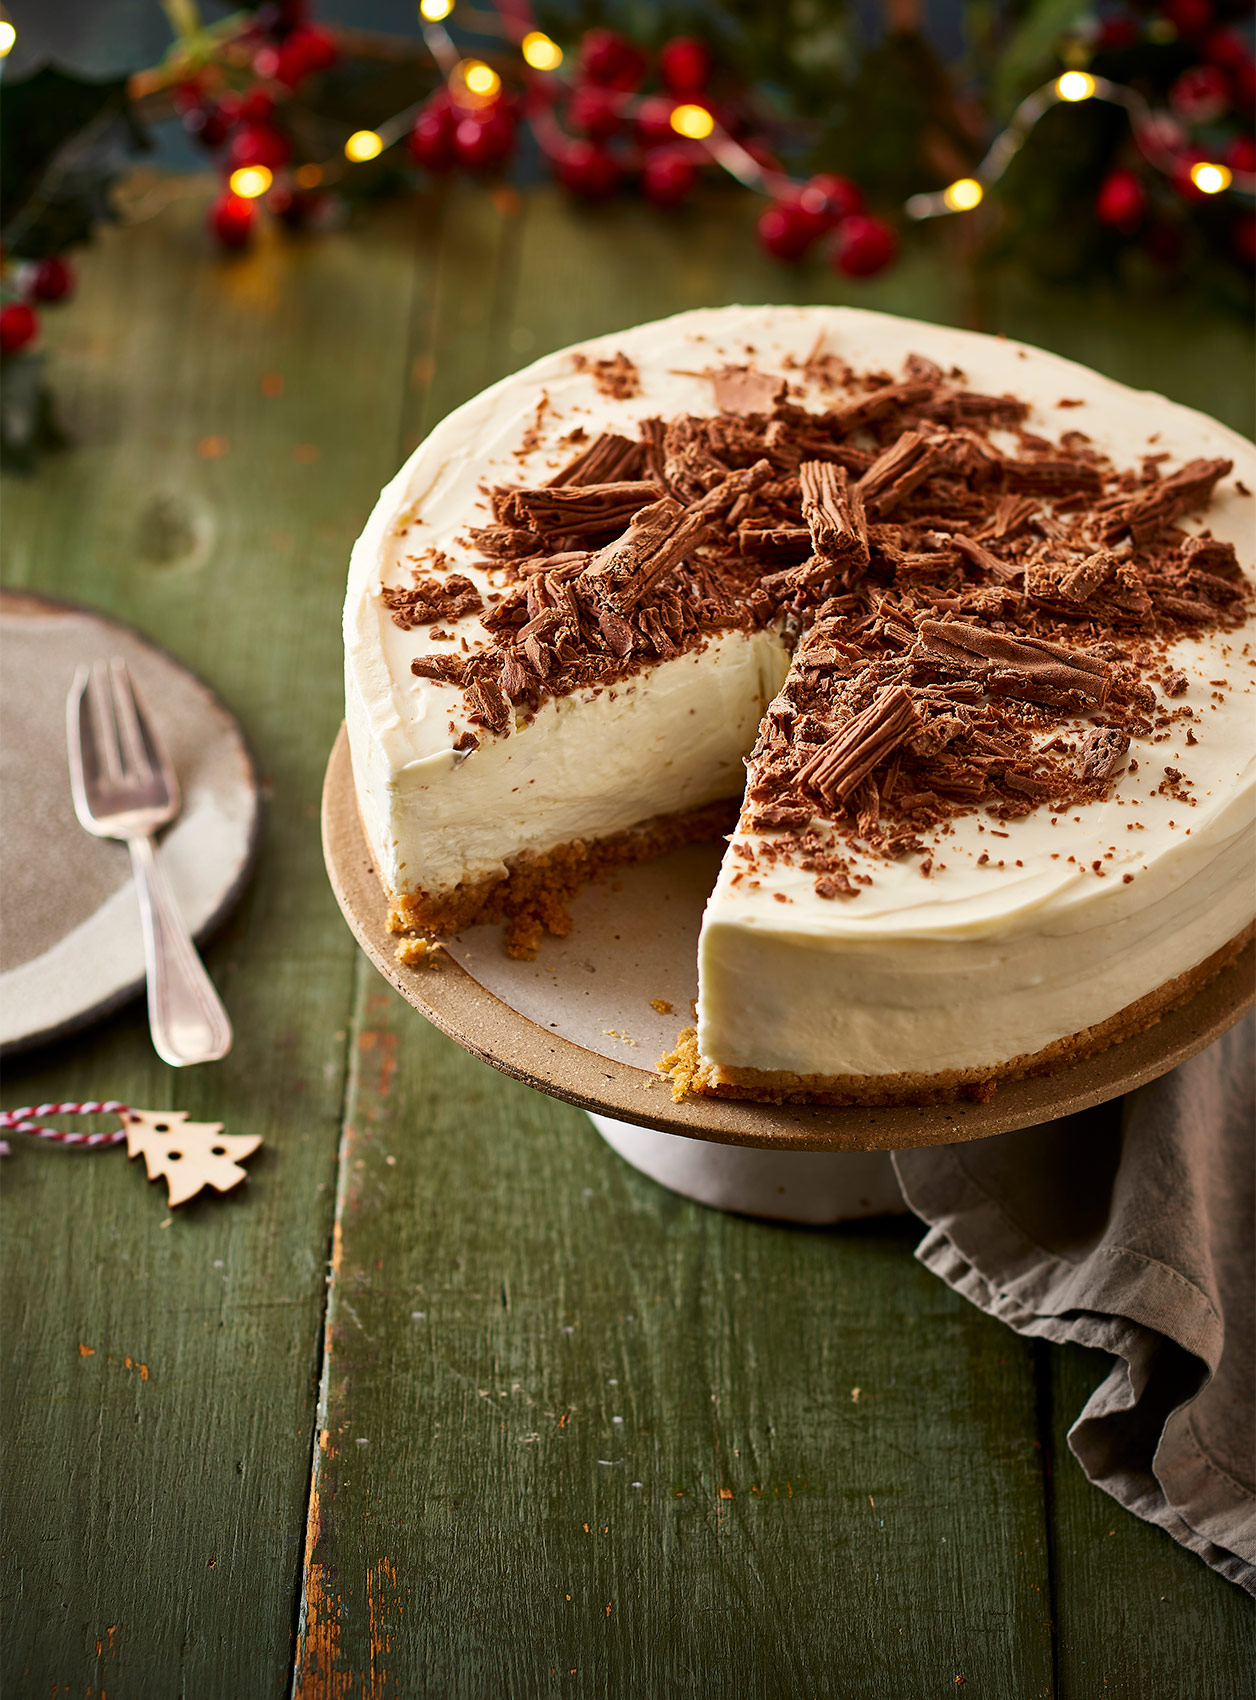 Philadelphia and Cadburys Flake cheesecake recipe